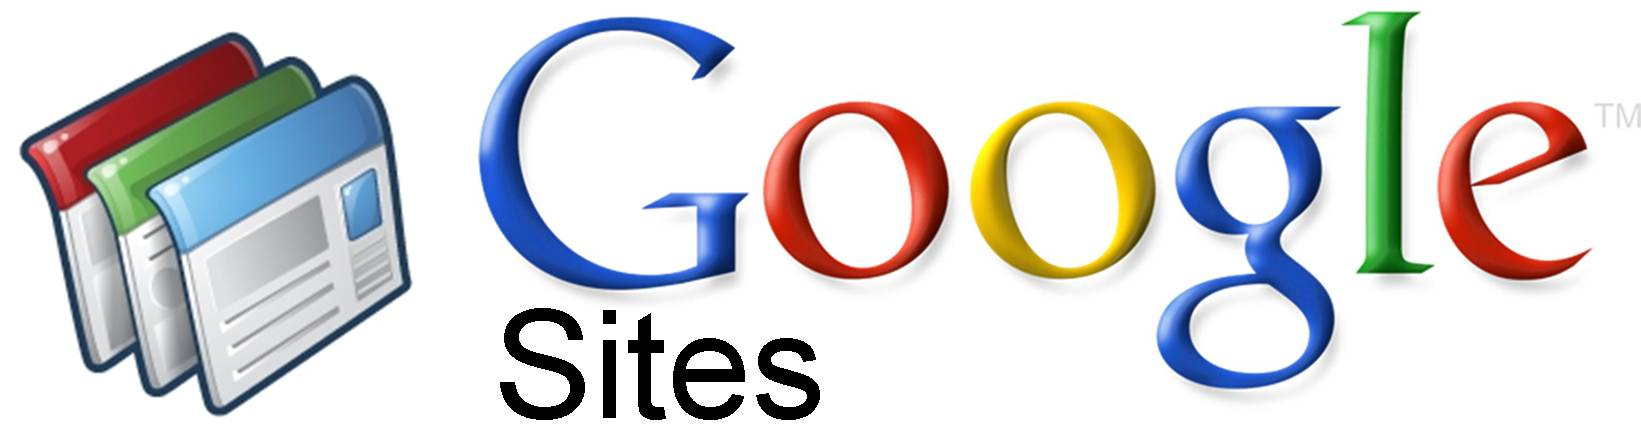 Google's One-Stop Shop for Nonprofits: What are Google Sites?